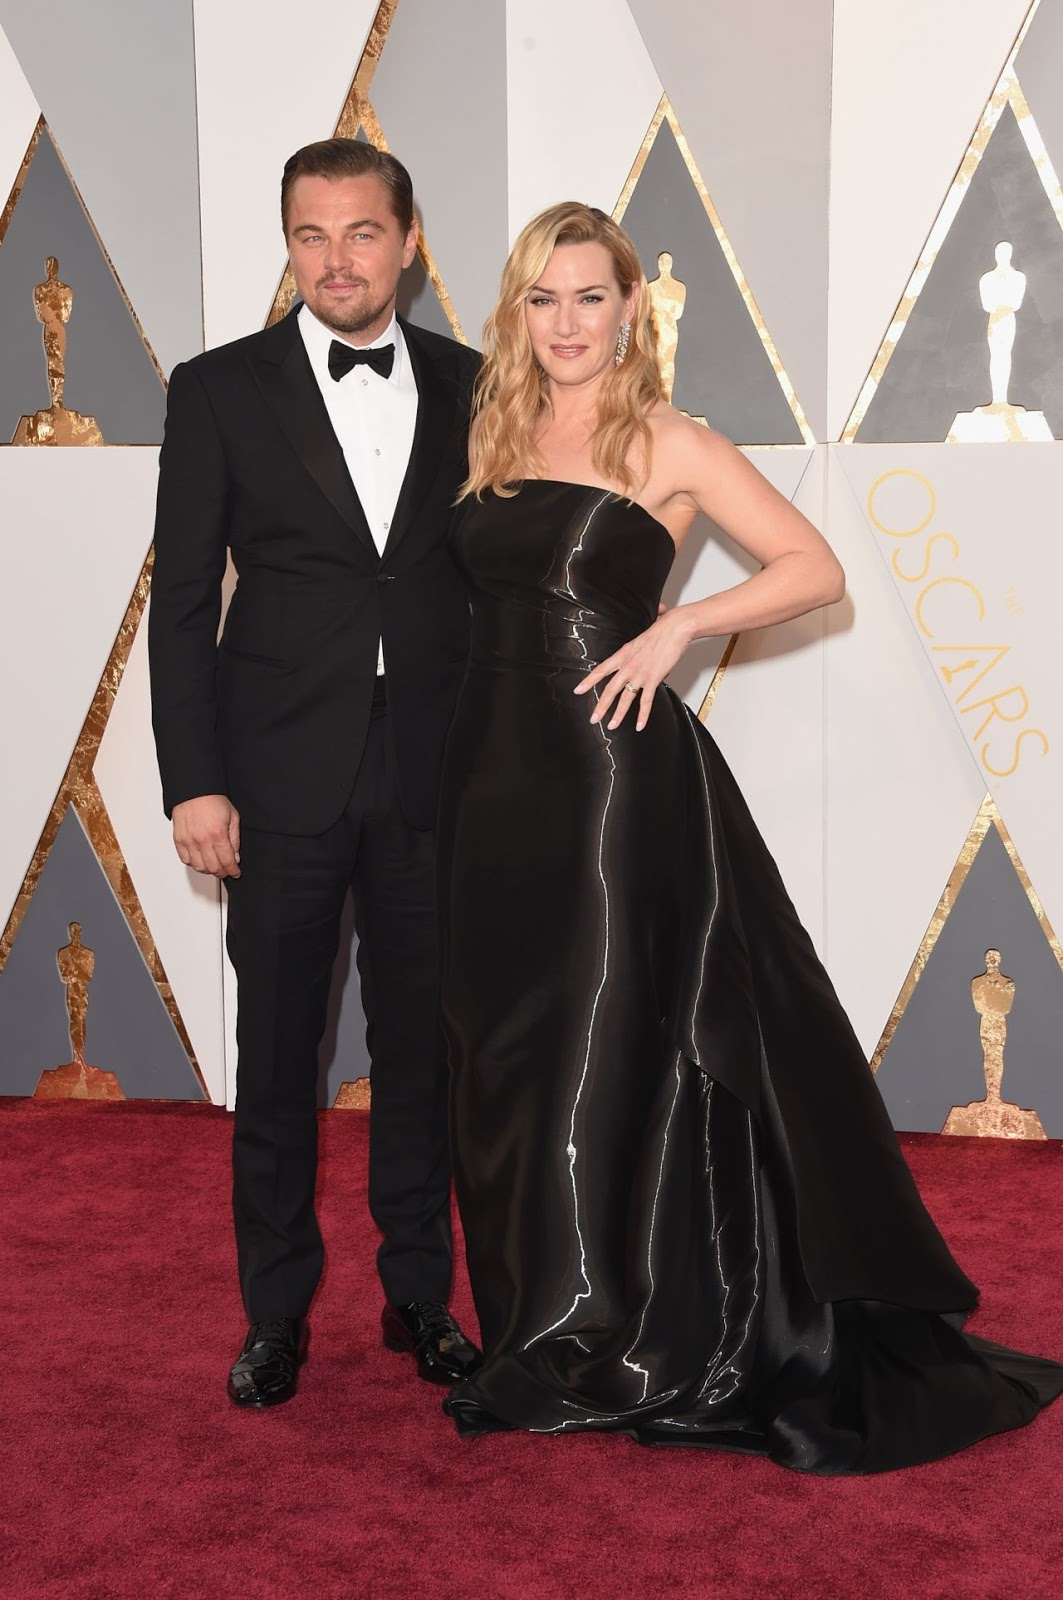 Kate and Leonardo reunite at the Oscars 2016